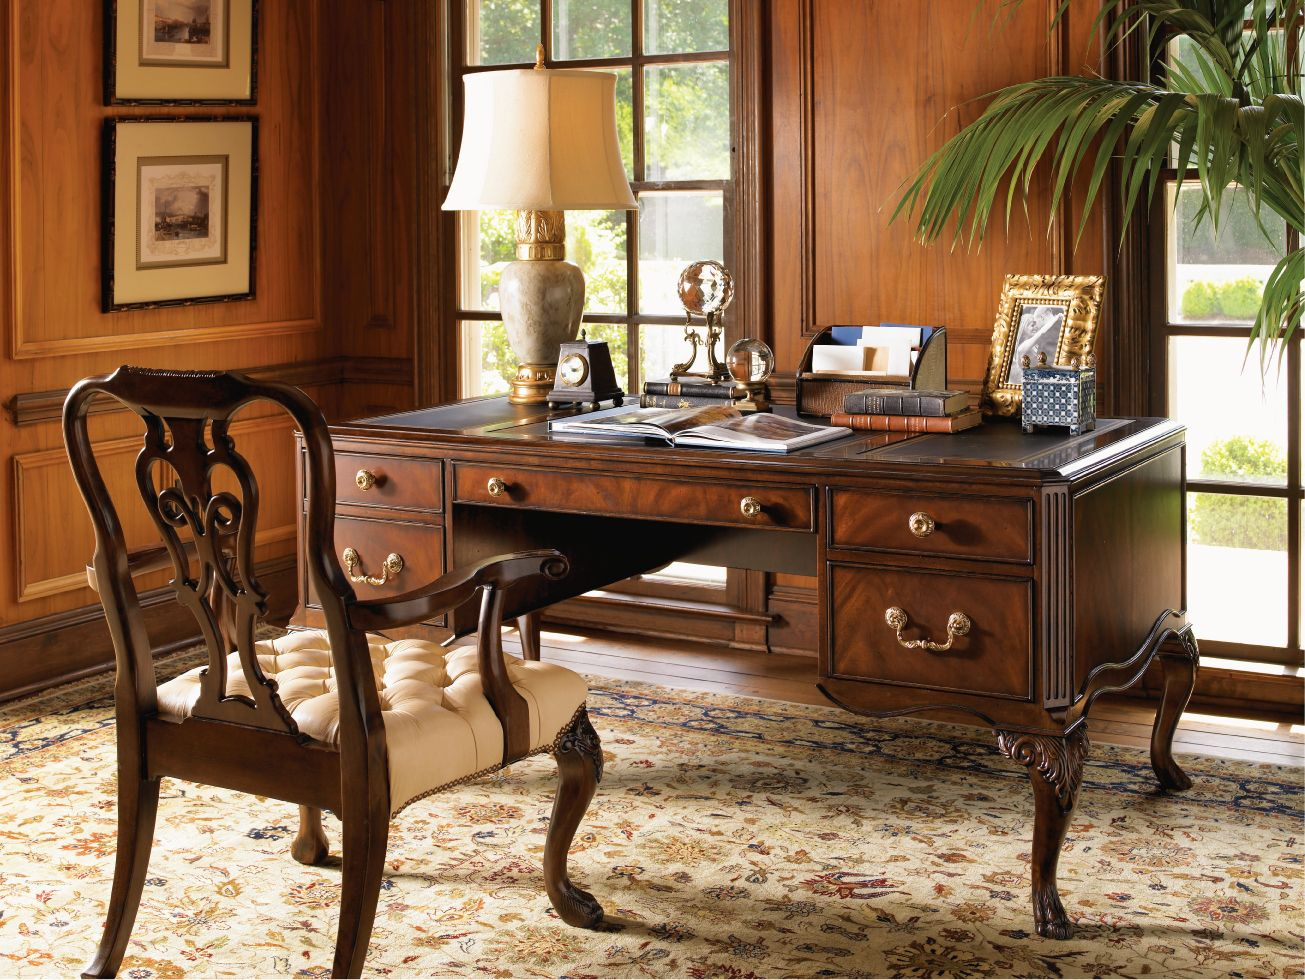 Classic Table Office Home Office Room Design Featuring Classic Solid Wood Office Desk